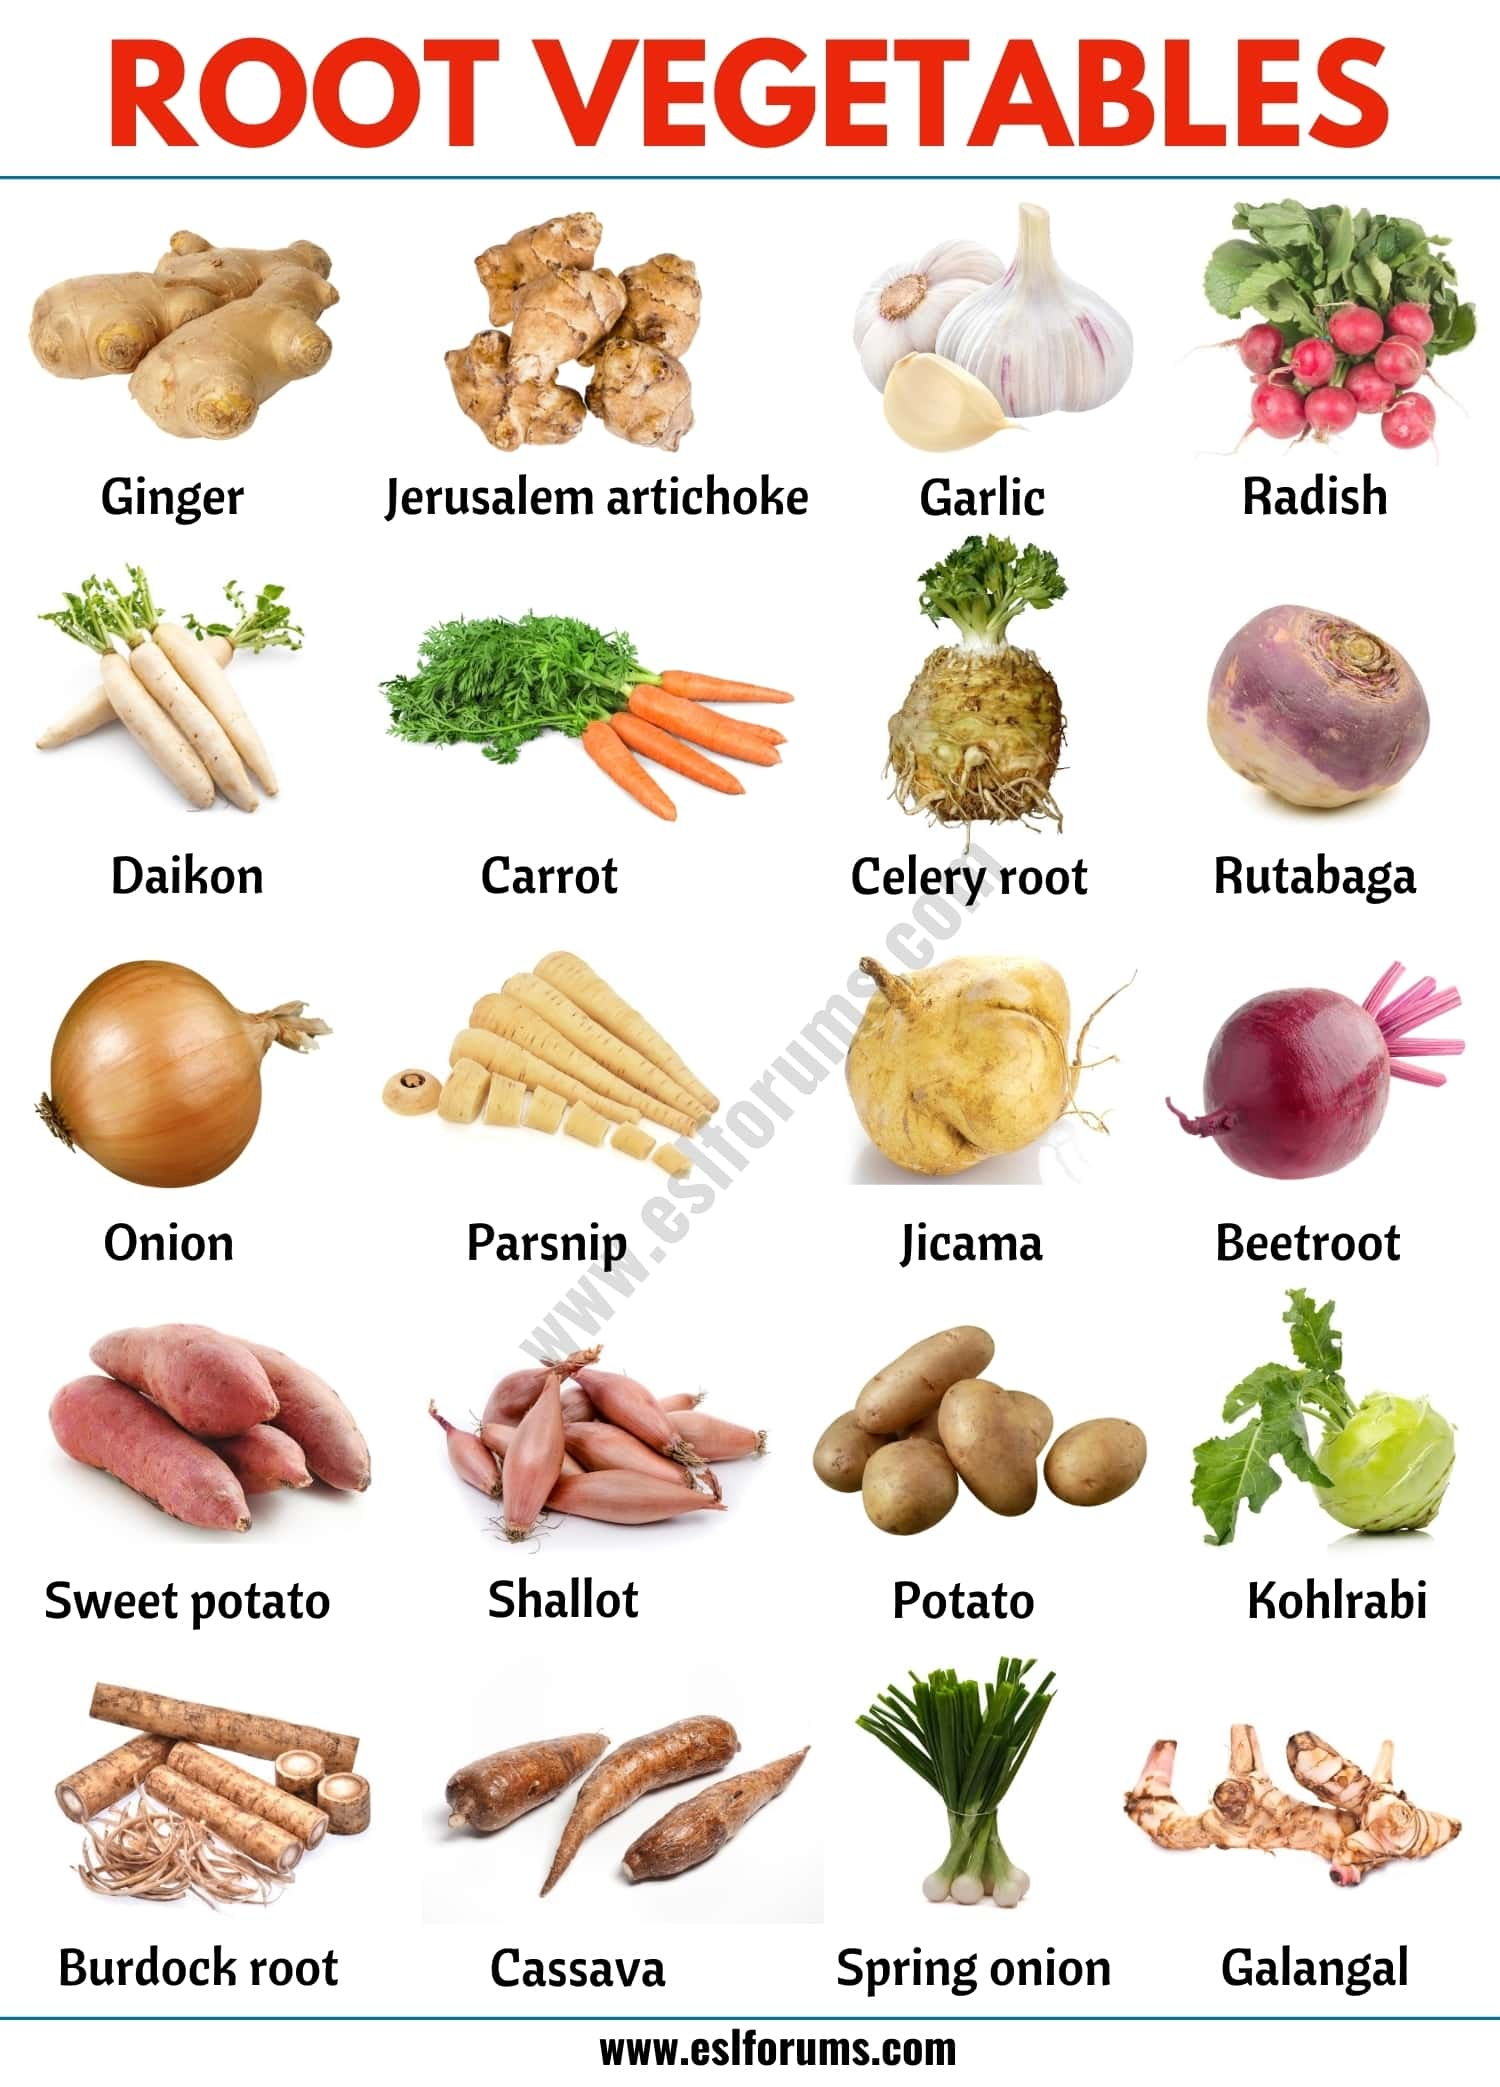 Root Vegetables: List of 20 Root Vegetables with ESL Picture!